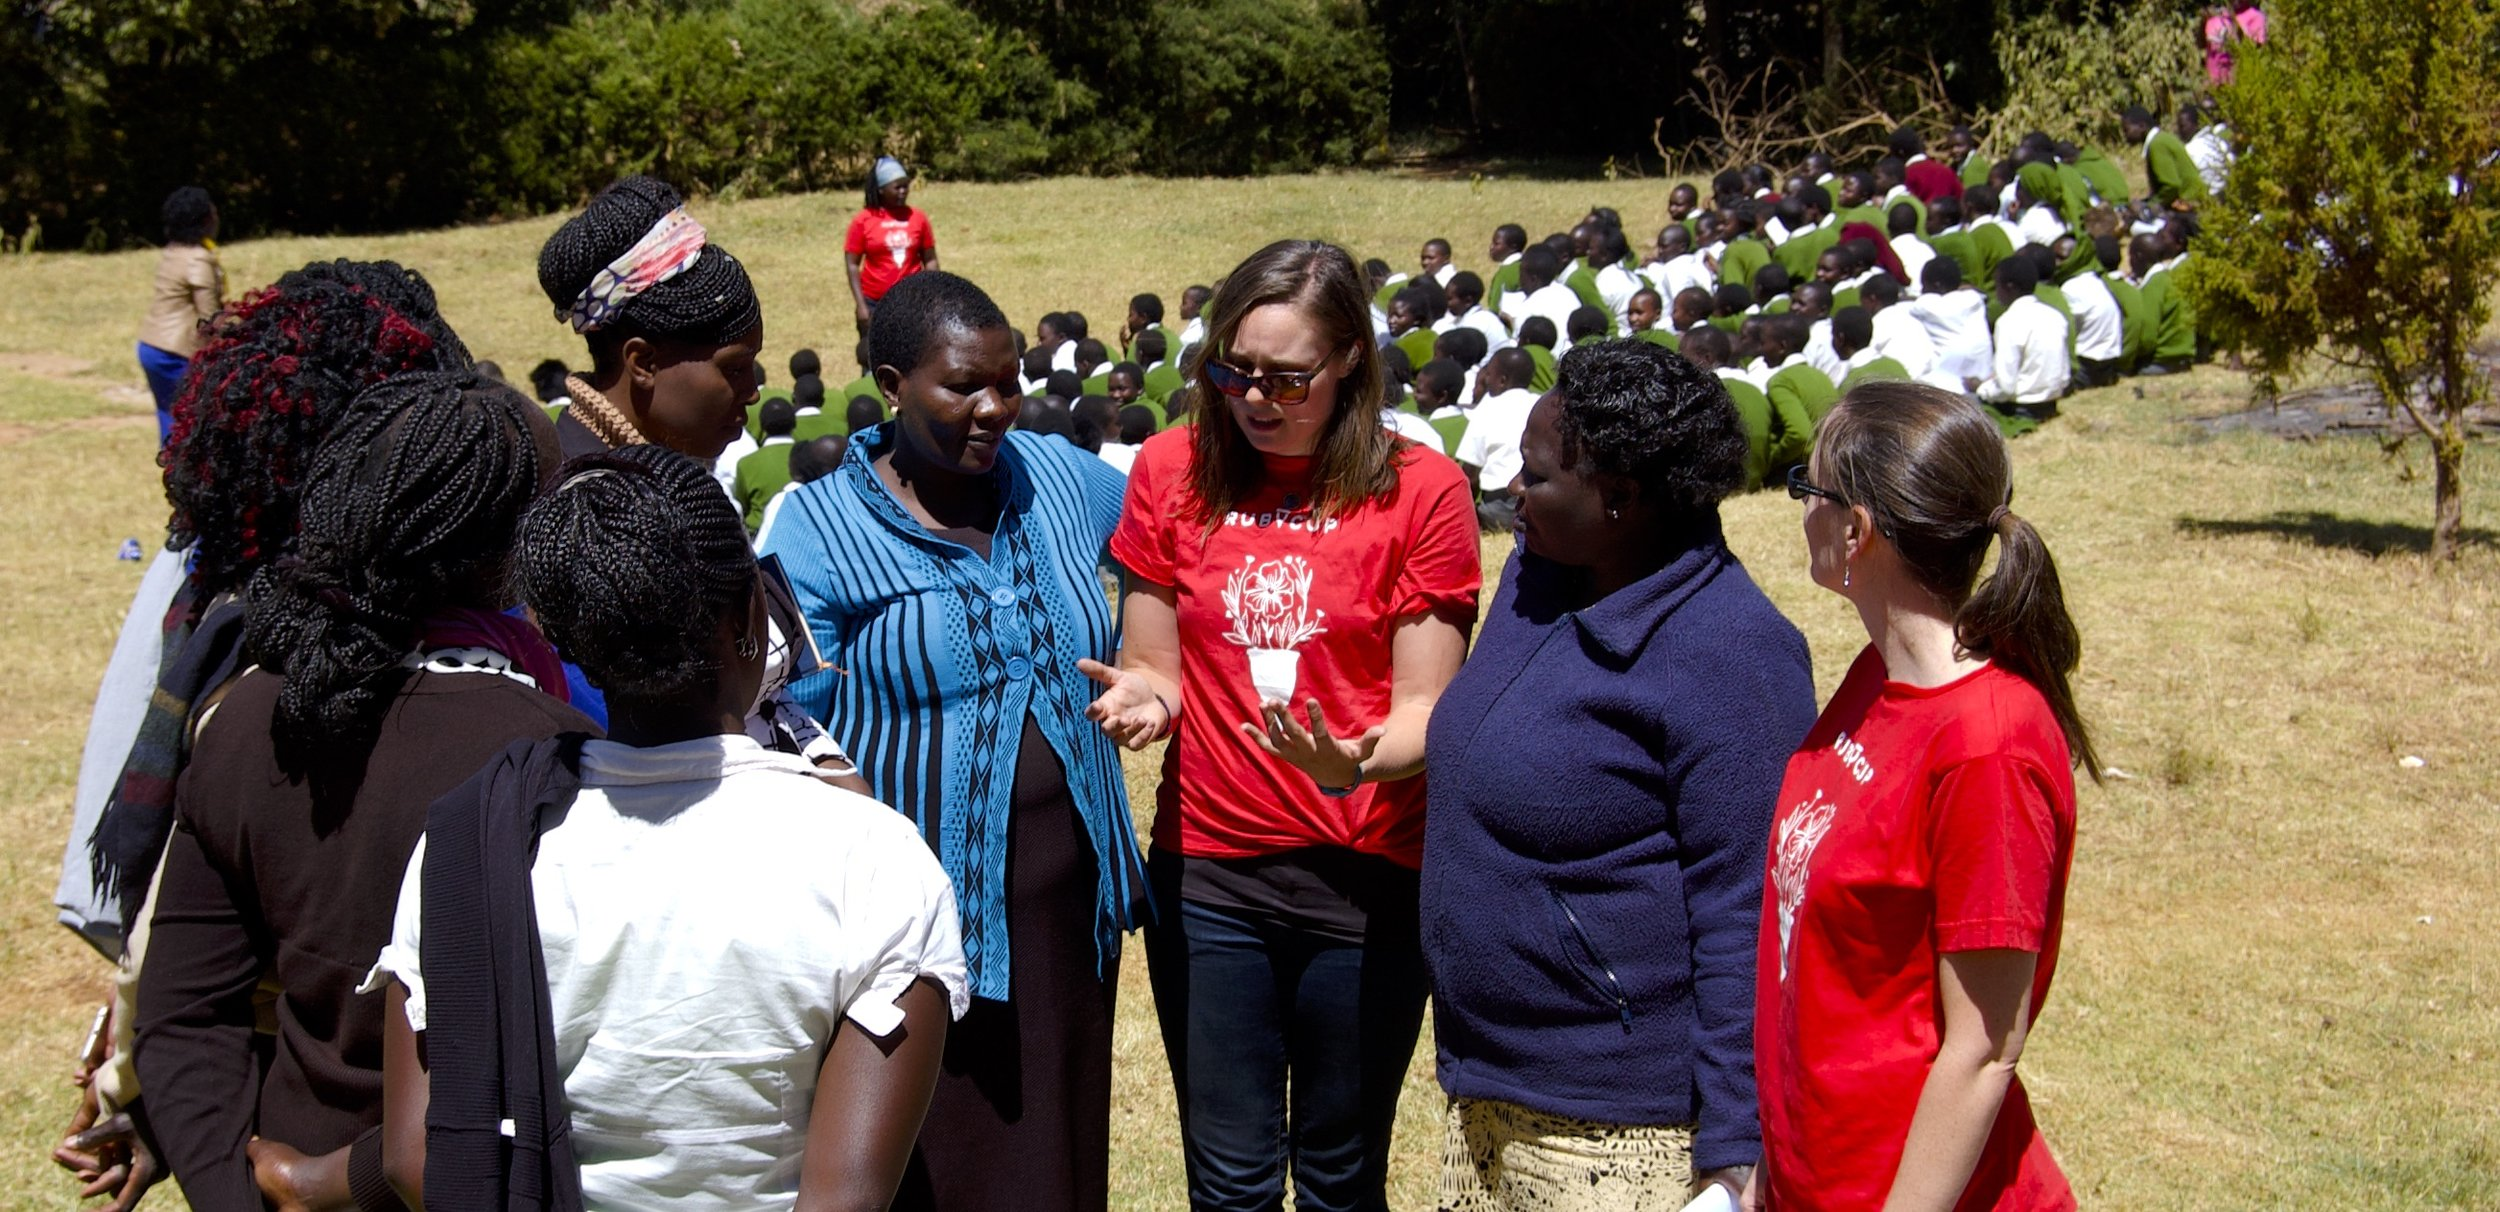 Teresa and I instruct the teachers on how to use the Ruby Cup while Golda engages the students behind us.